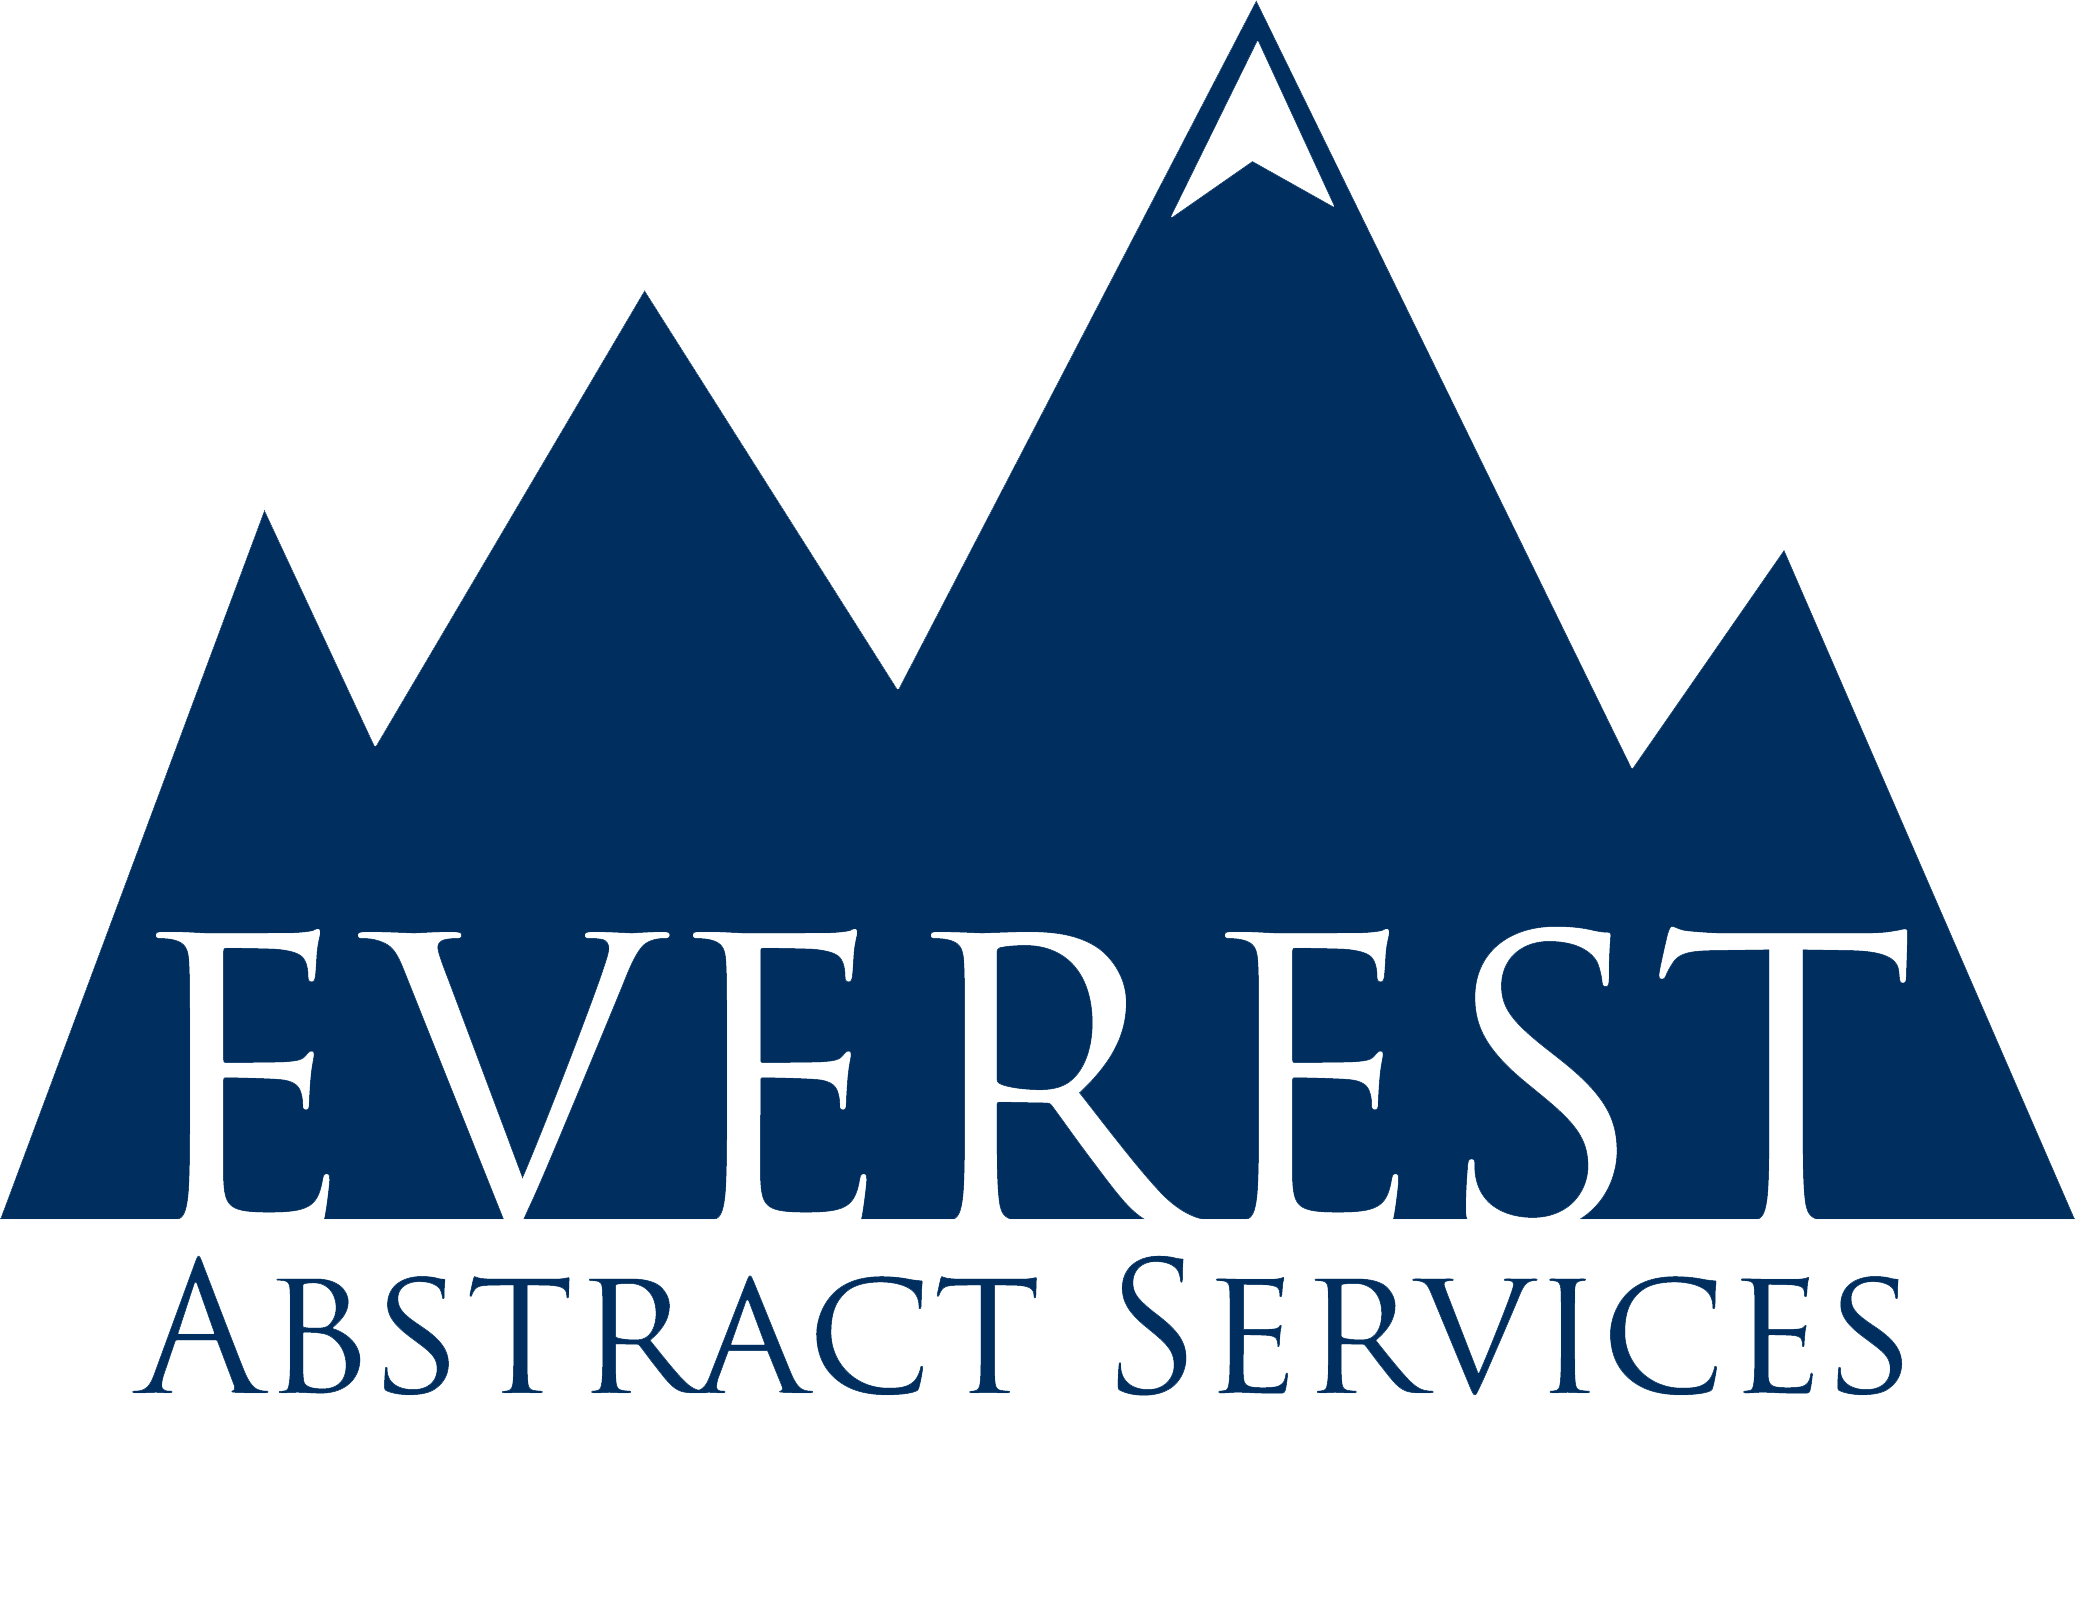 EVEREST Abstract Services